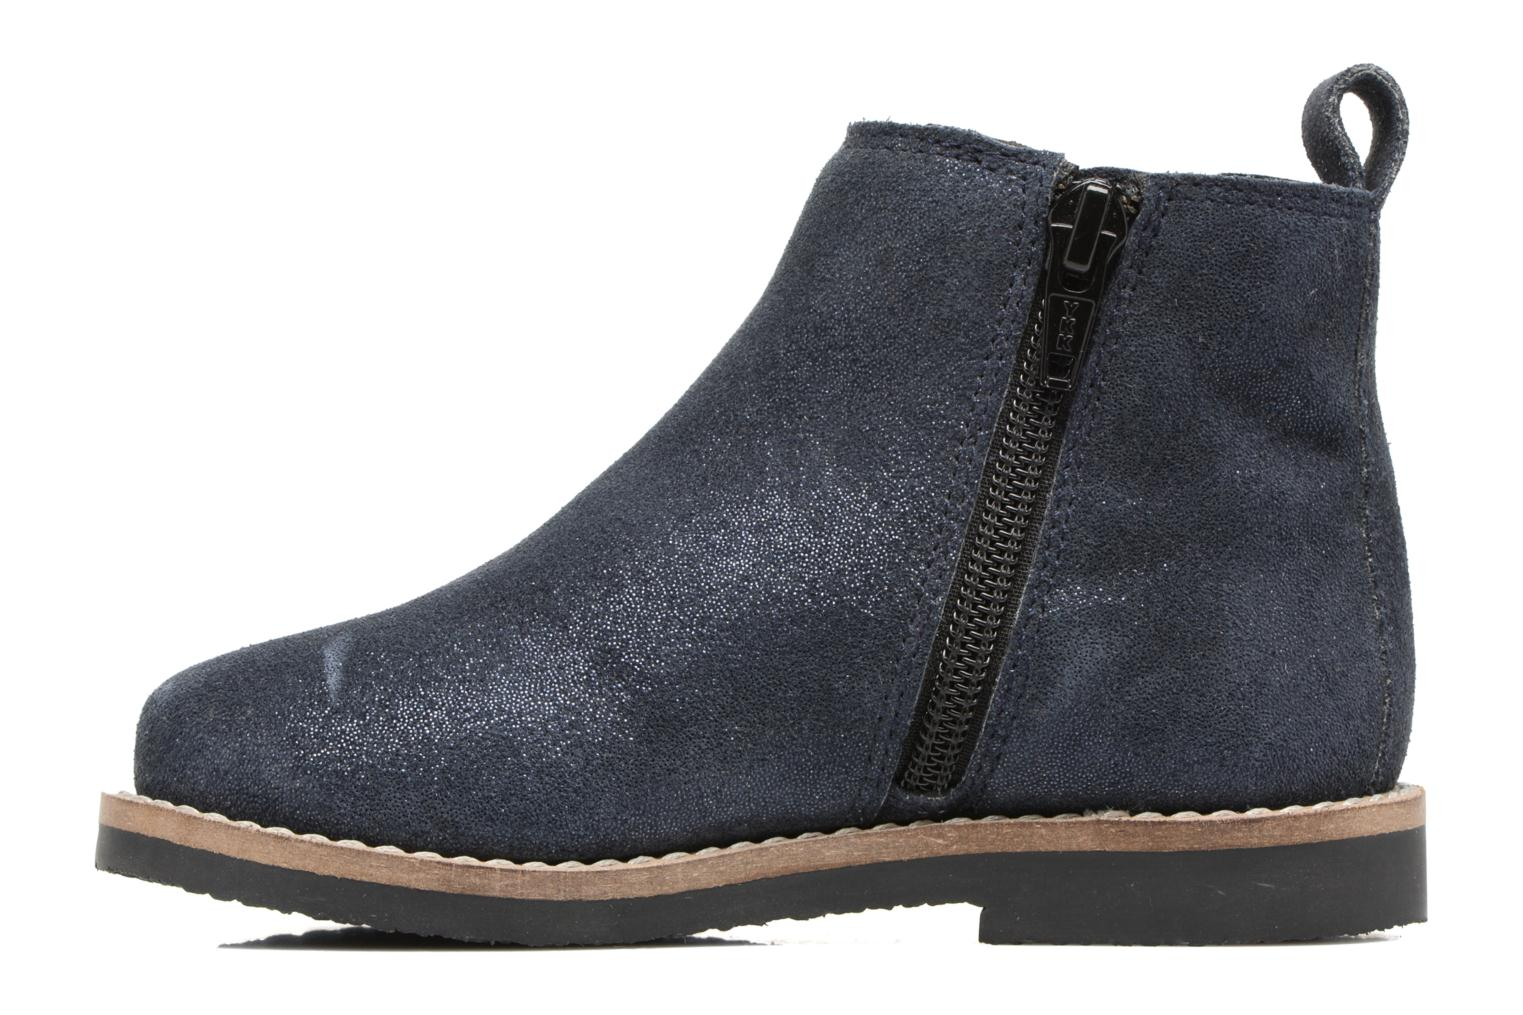 SELIME LEATHER Navy glitter